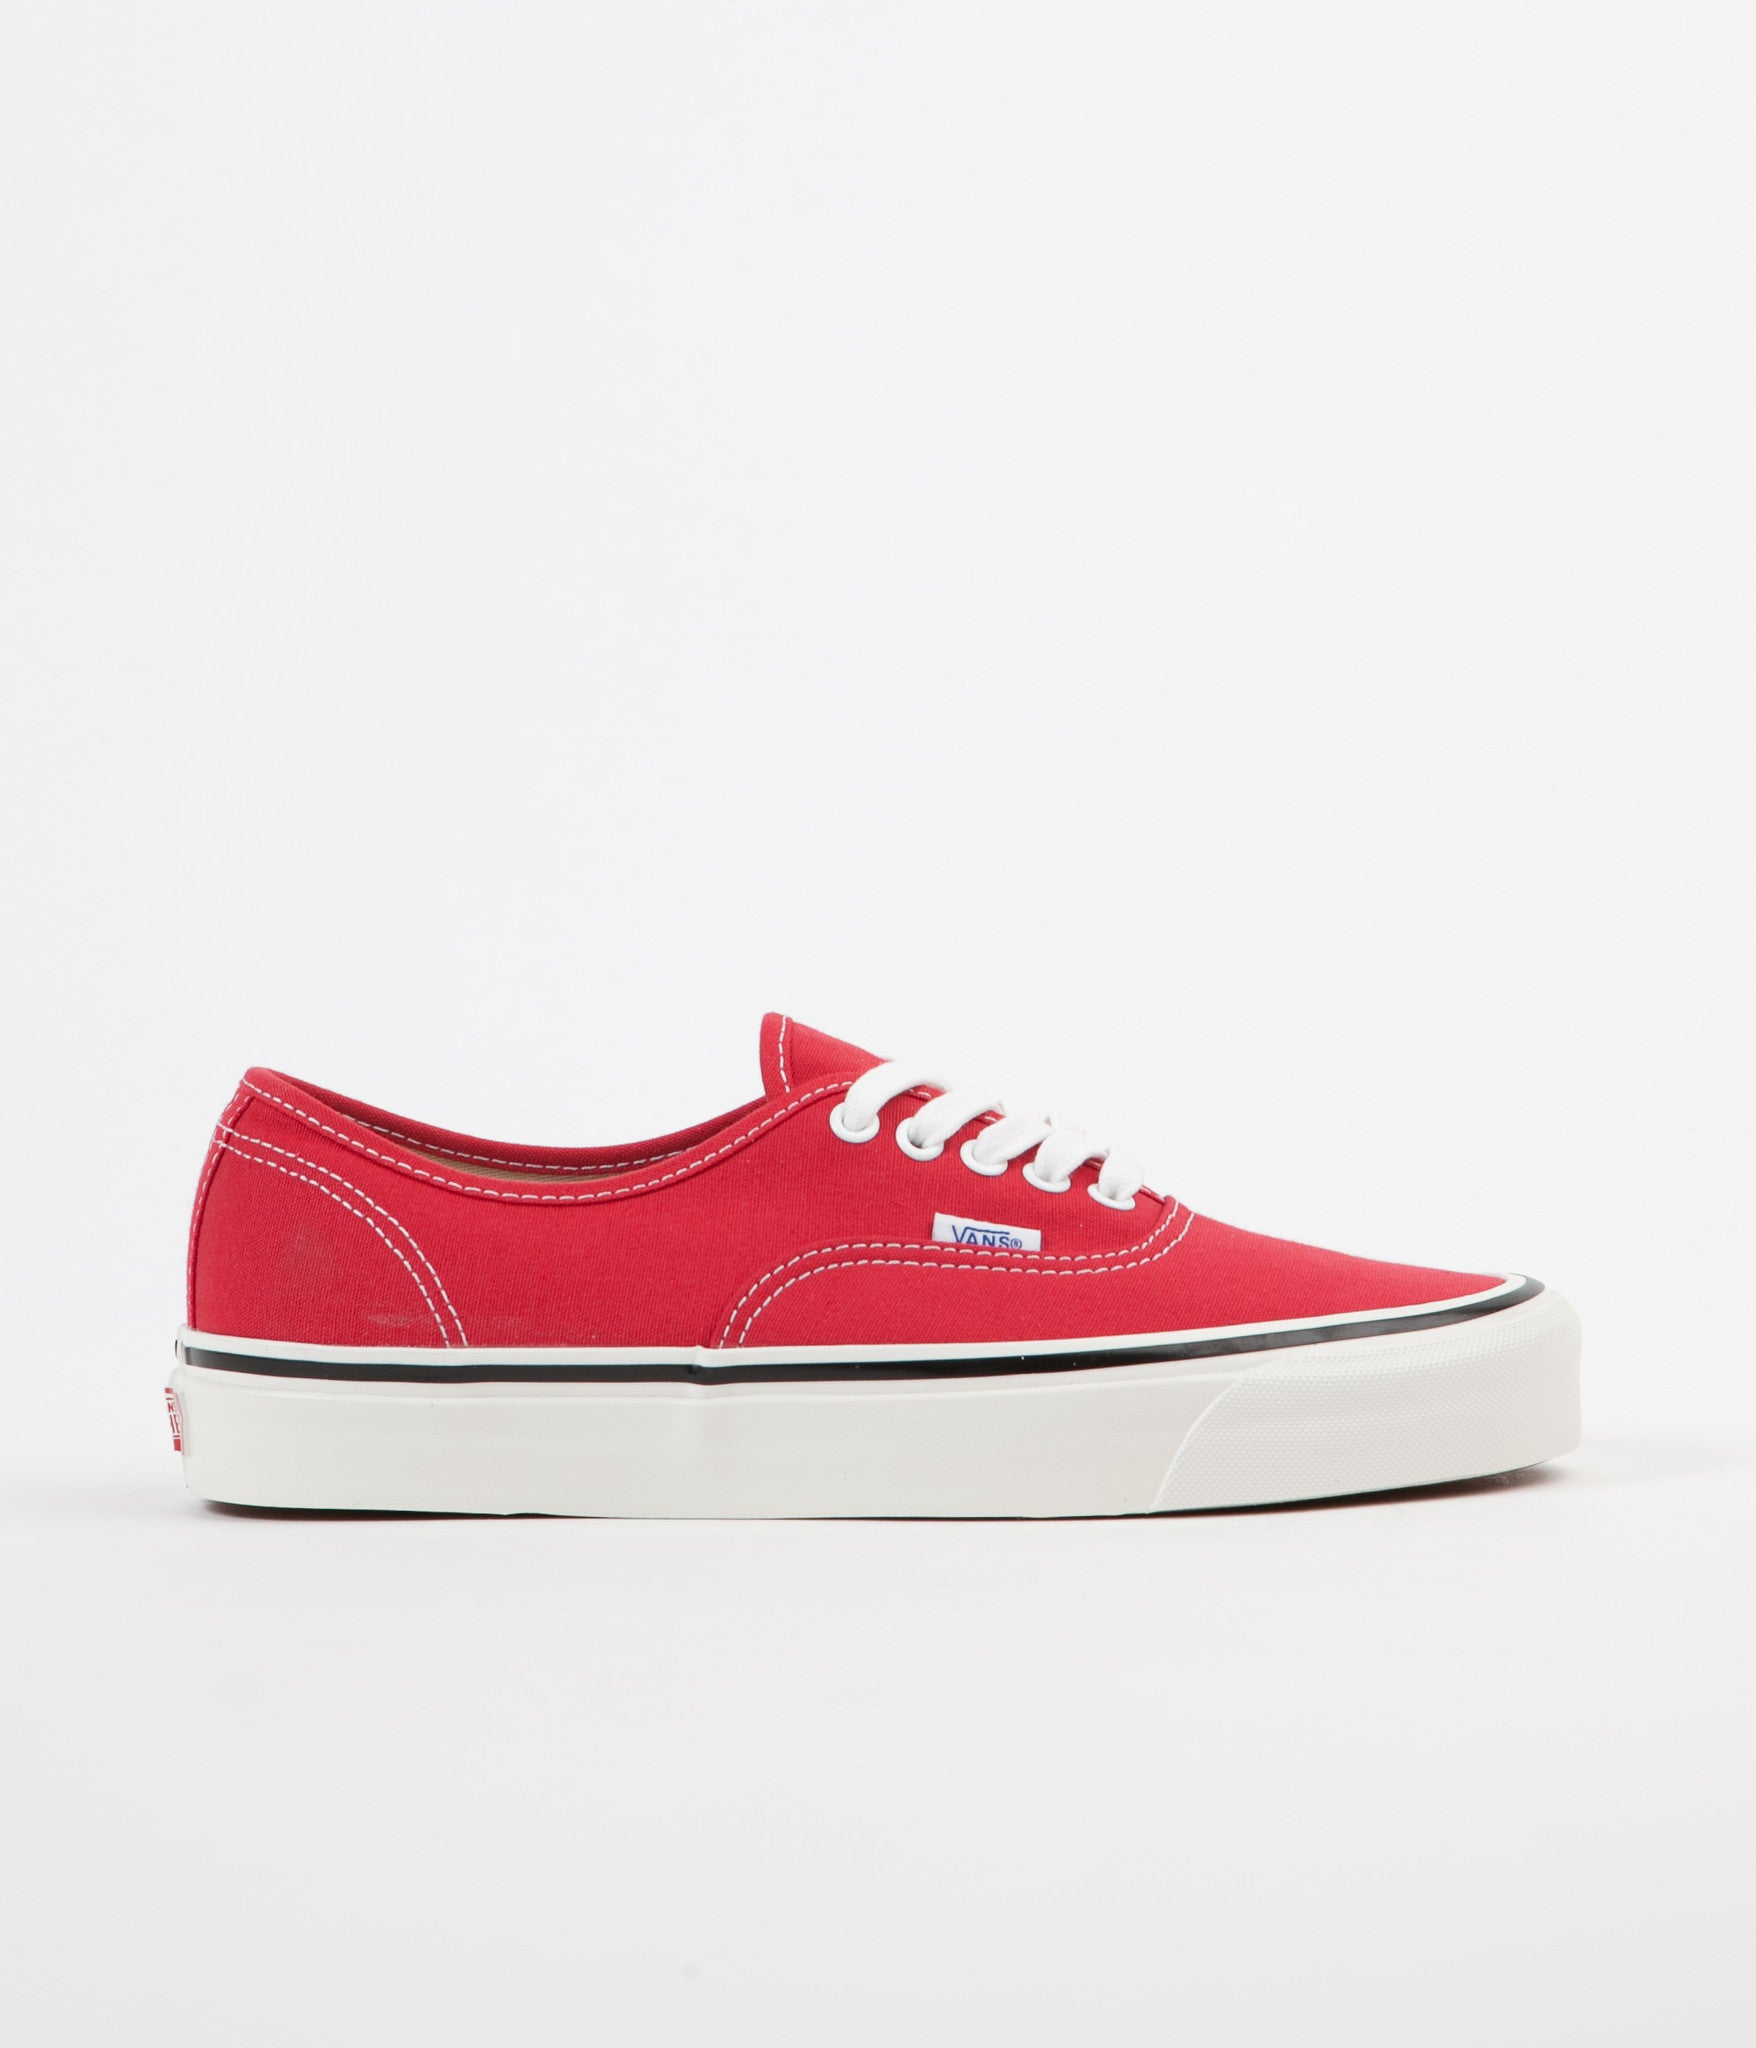 ... Vans Authentic 44 DX Anaheim Factory Shoes - Racing Red ...